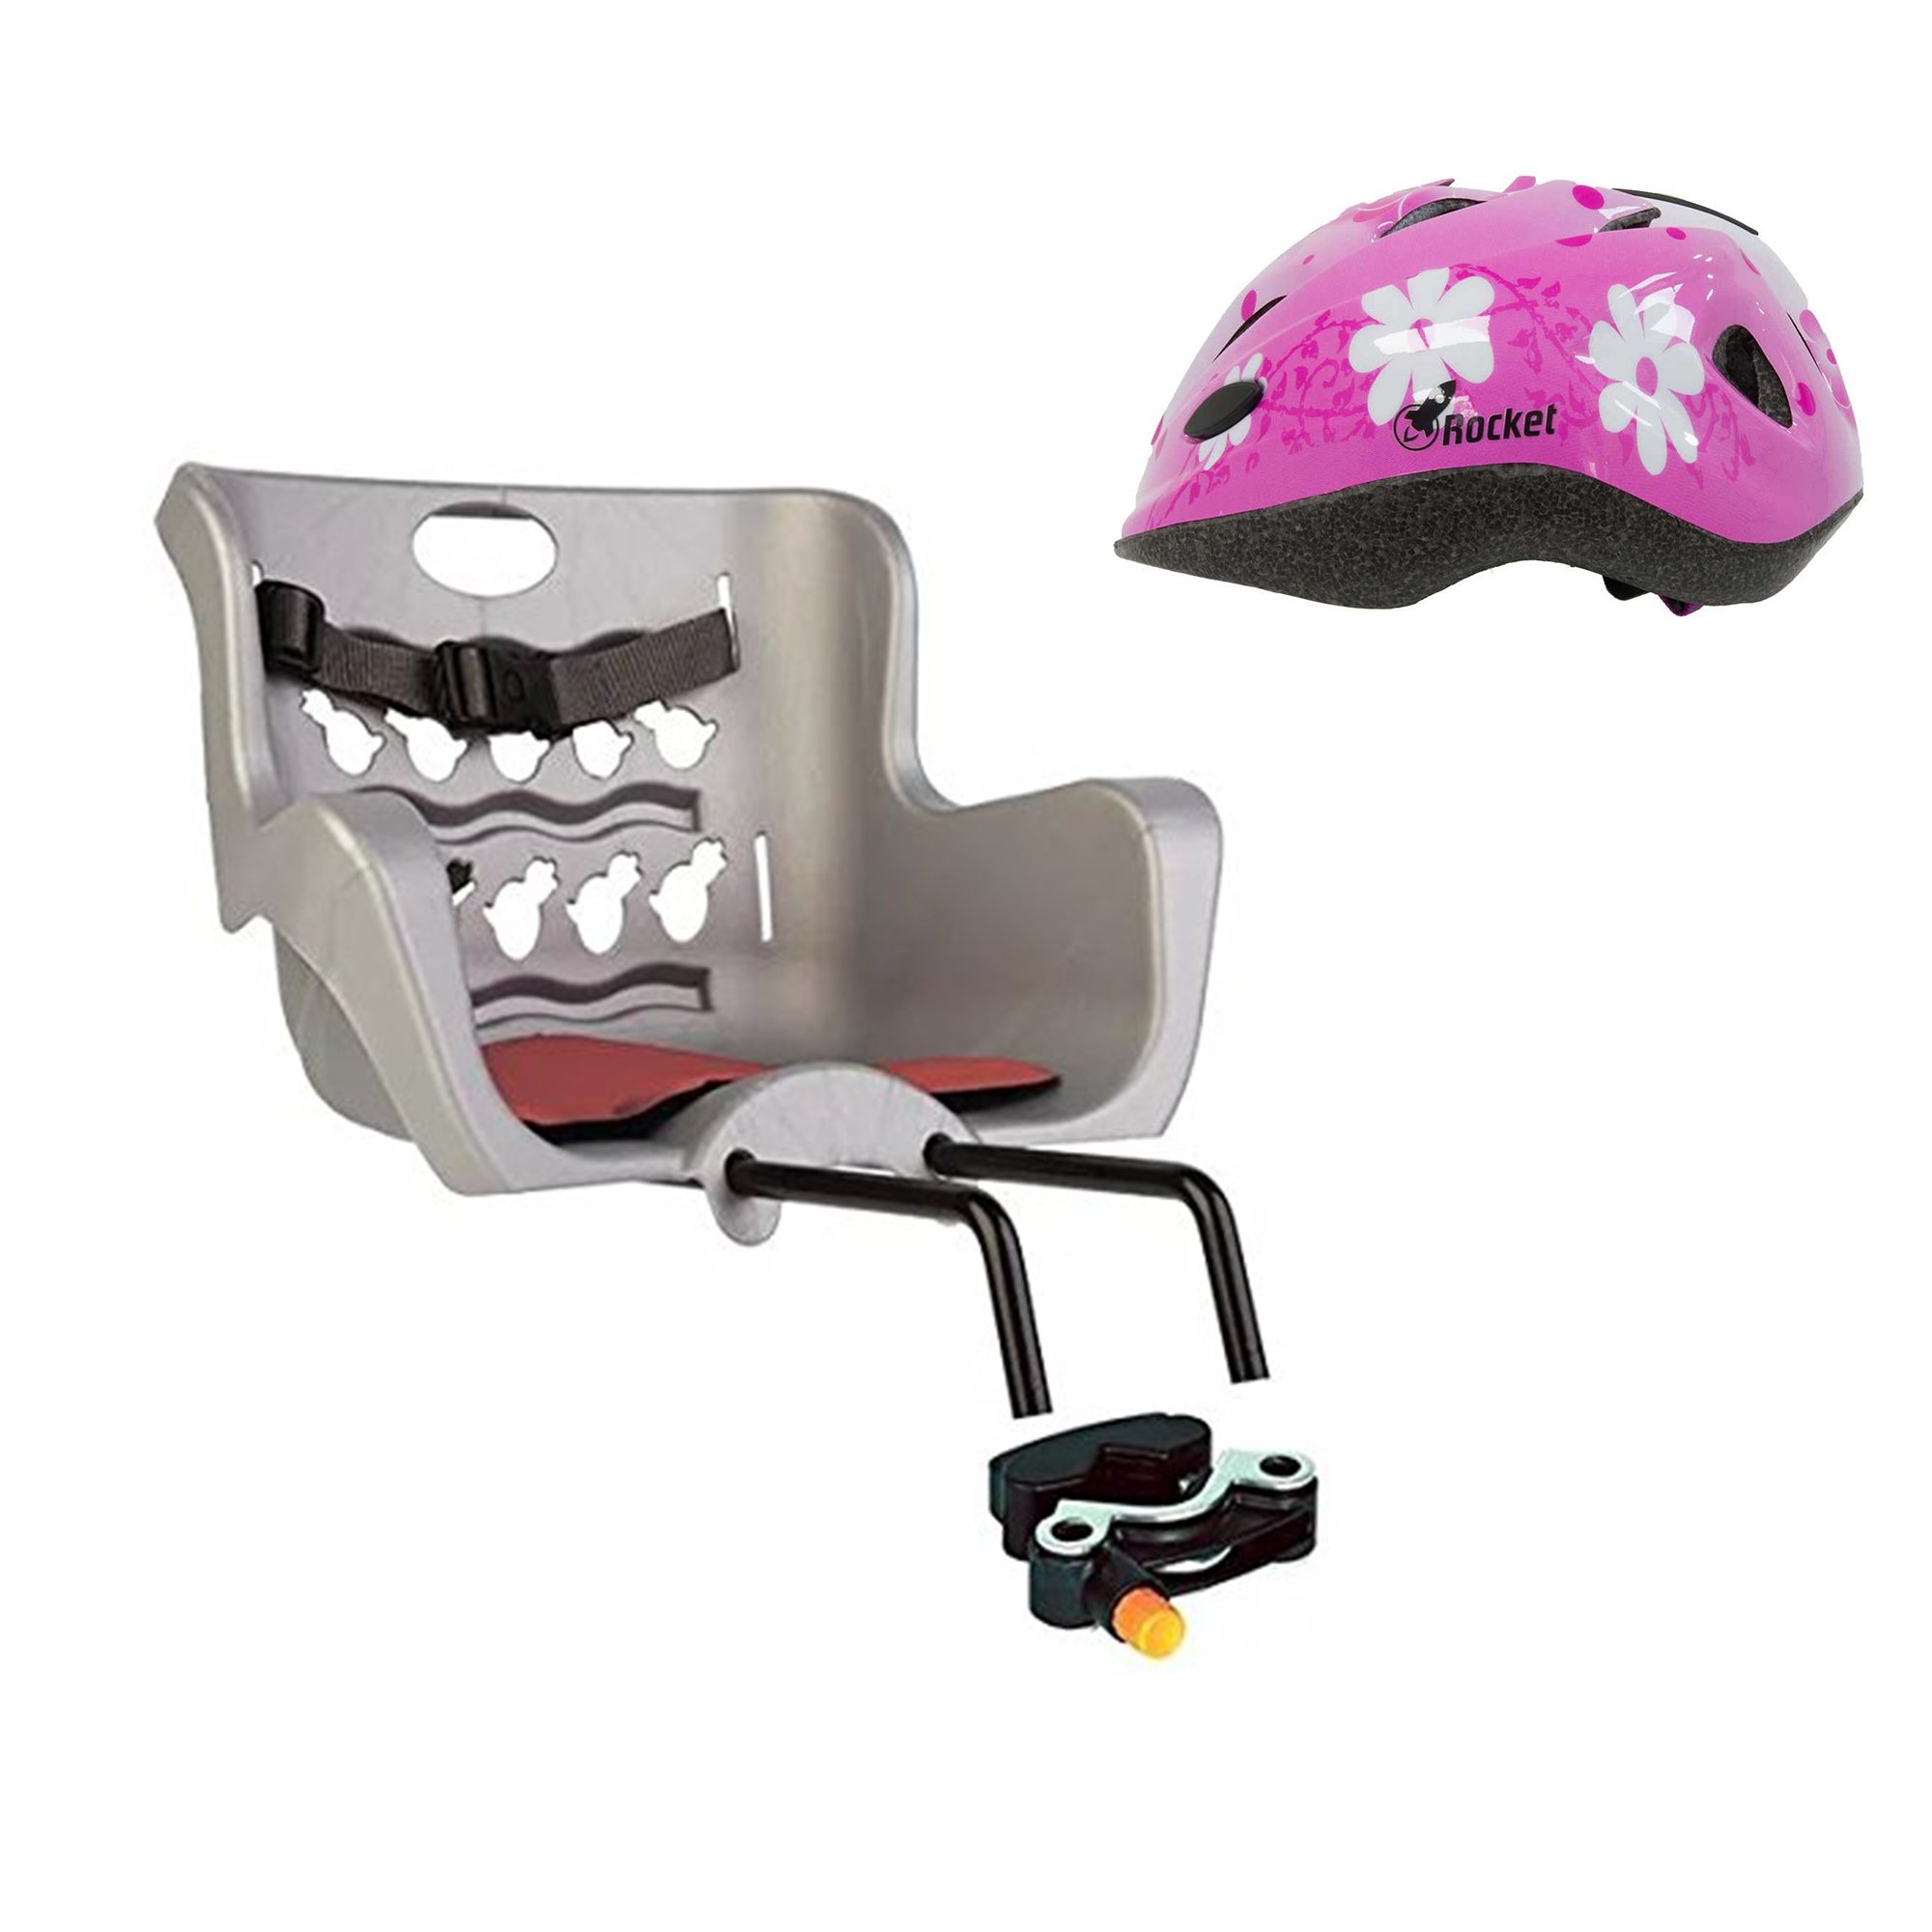 Bellelli Pulcino Bicycle Child Seat Child Carrier For Bikes Mount On Front Fork Made In Italy Super And Super Safe For Your Child (Gray + Pink Helmet)